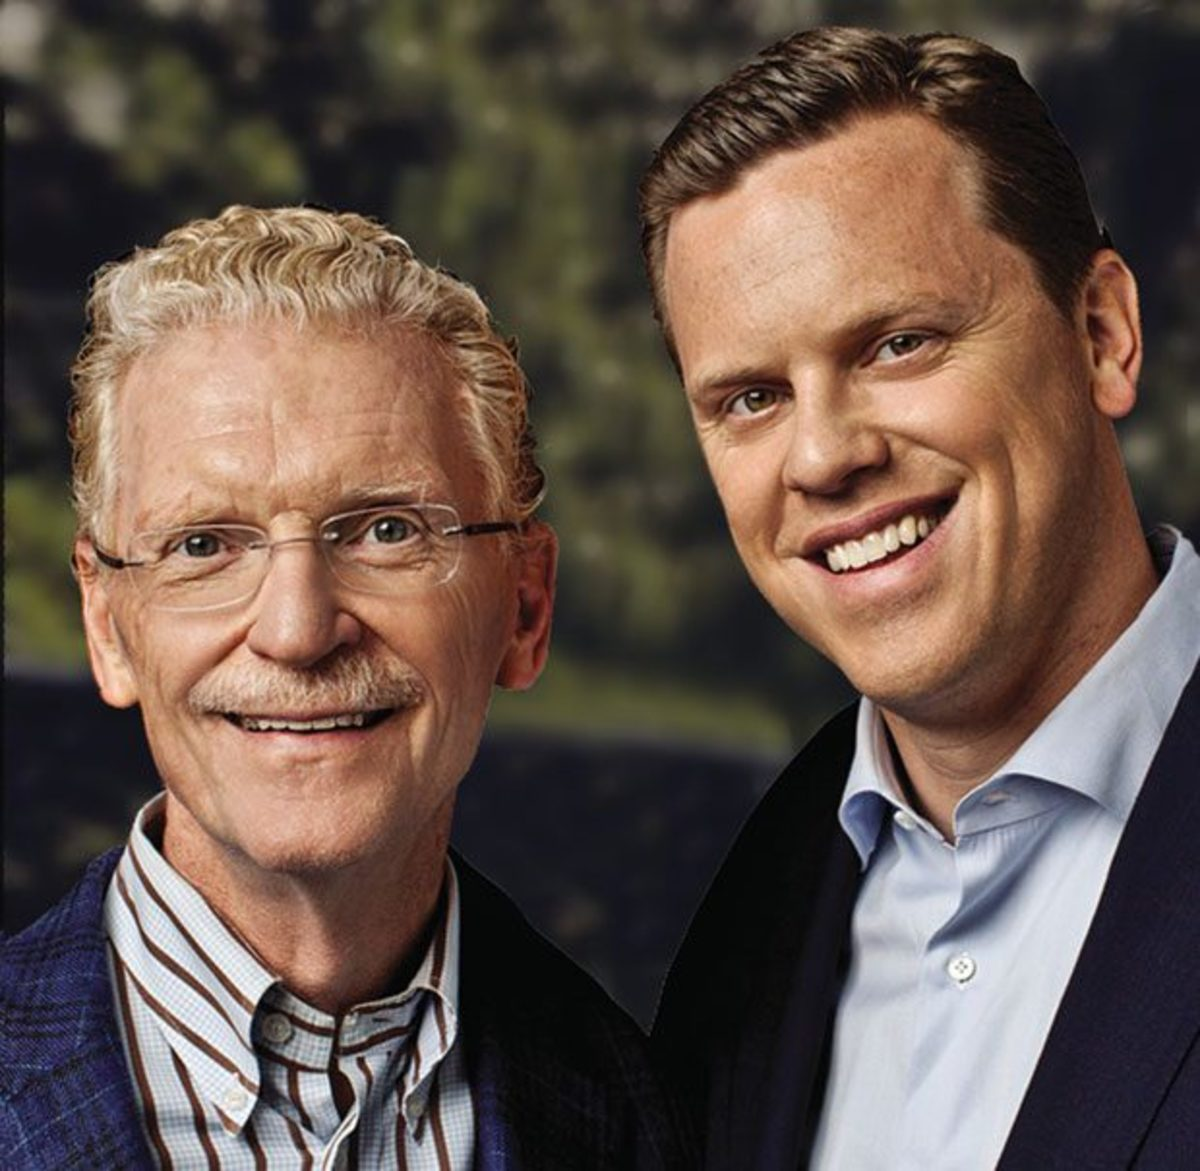 Author Bill Geist, with famous son Willie Geist, also a newsman.